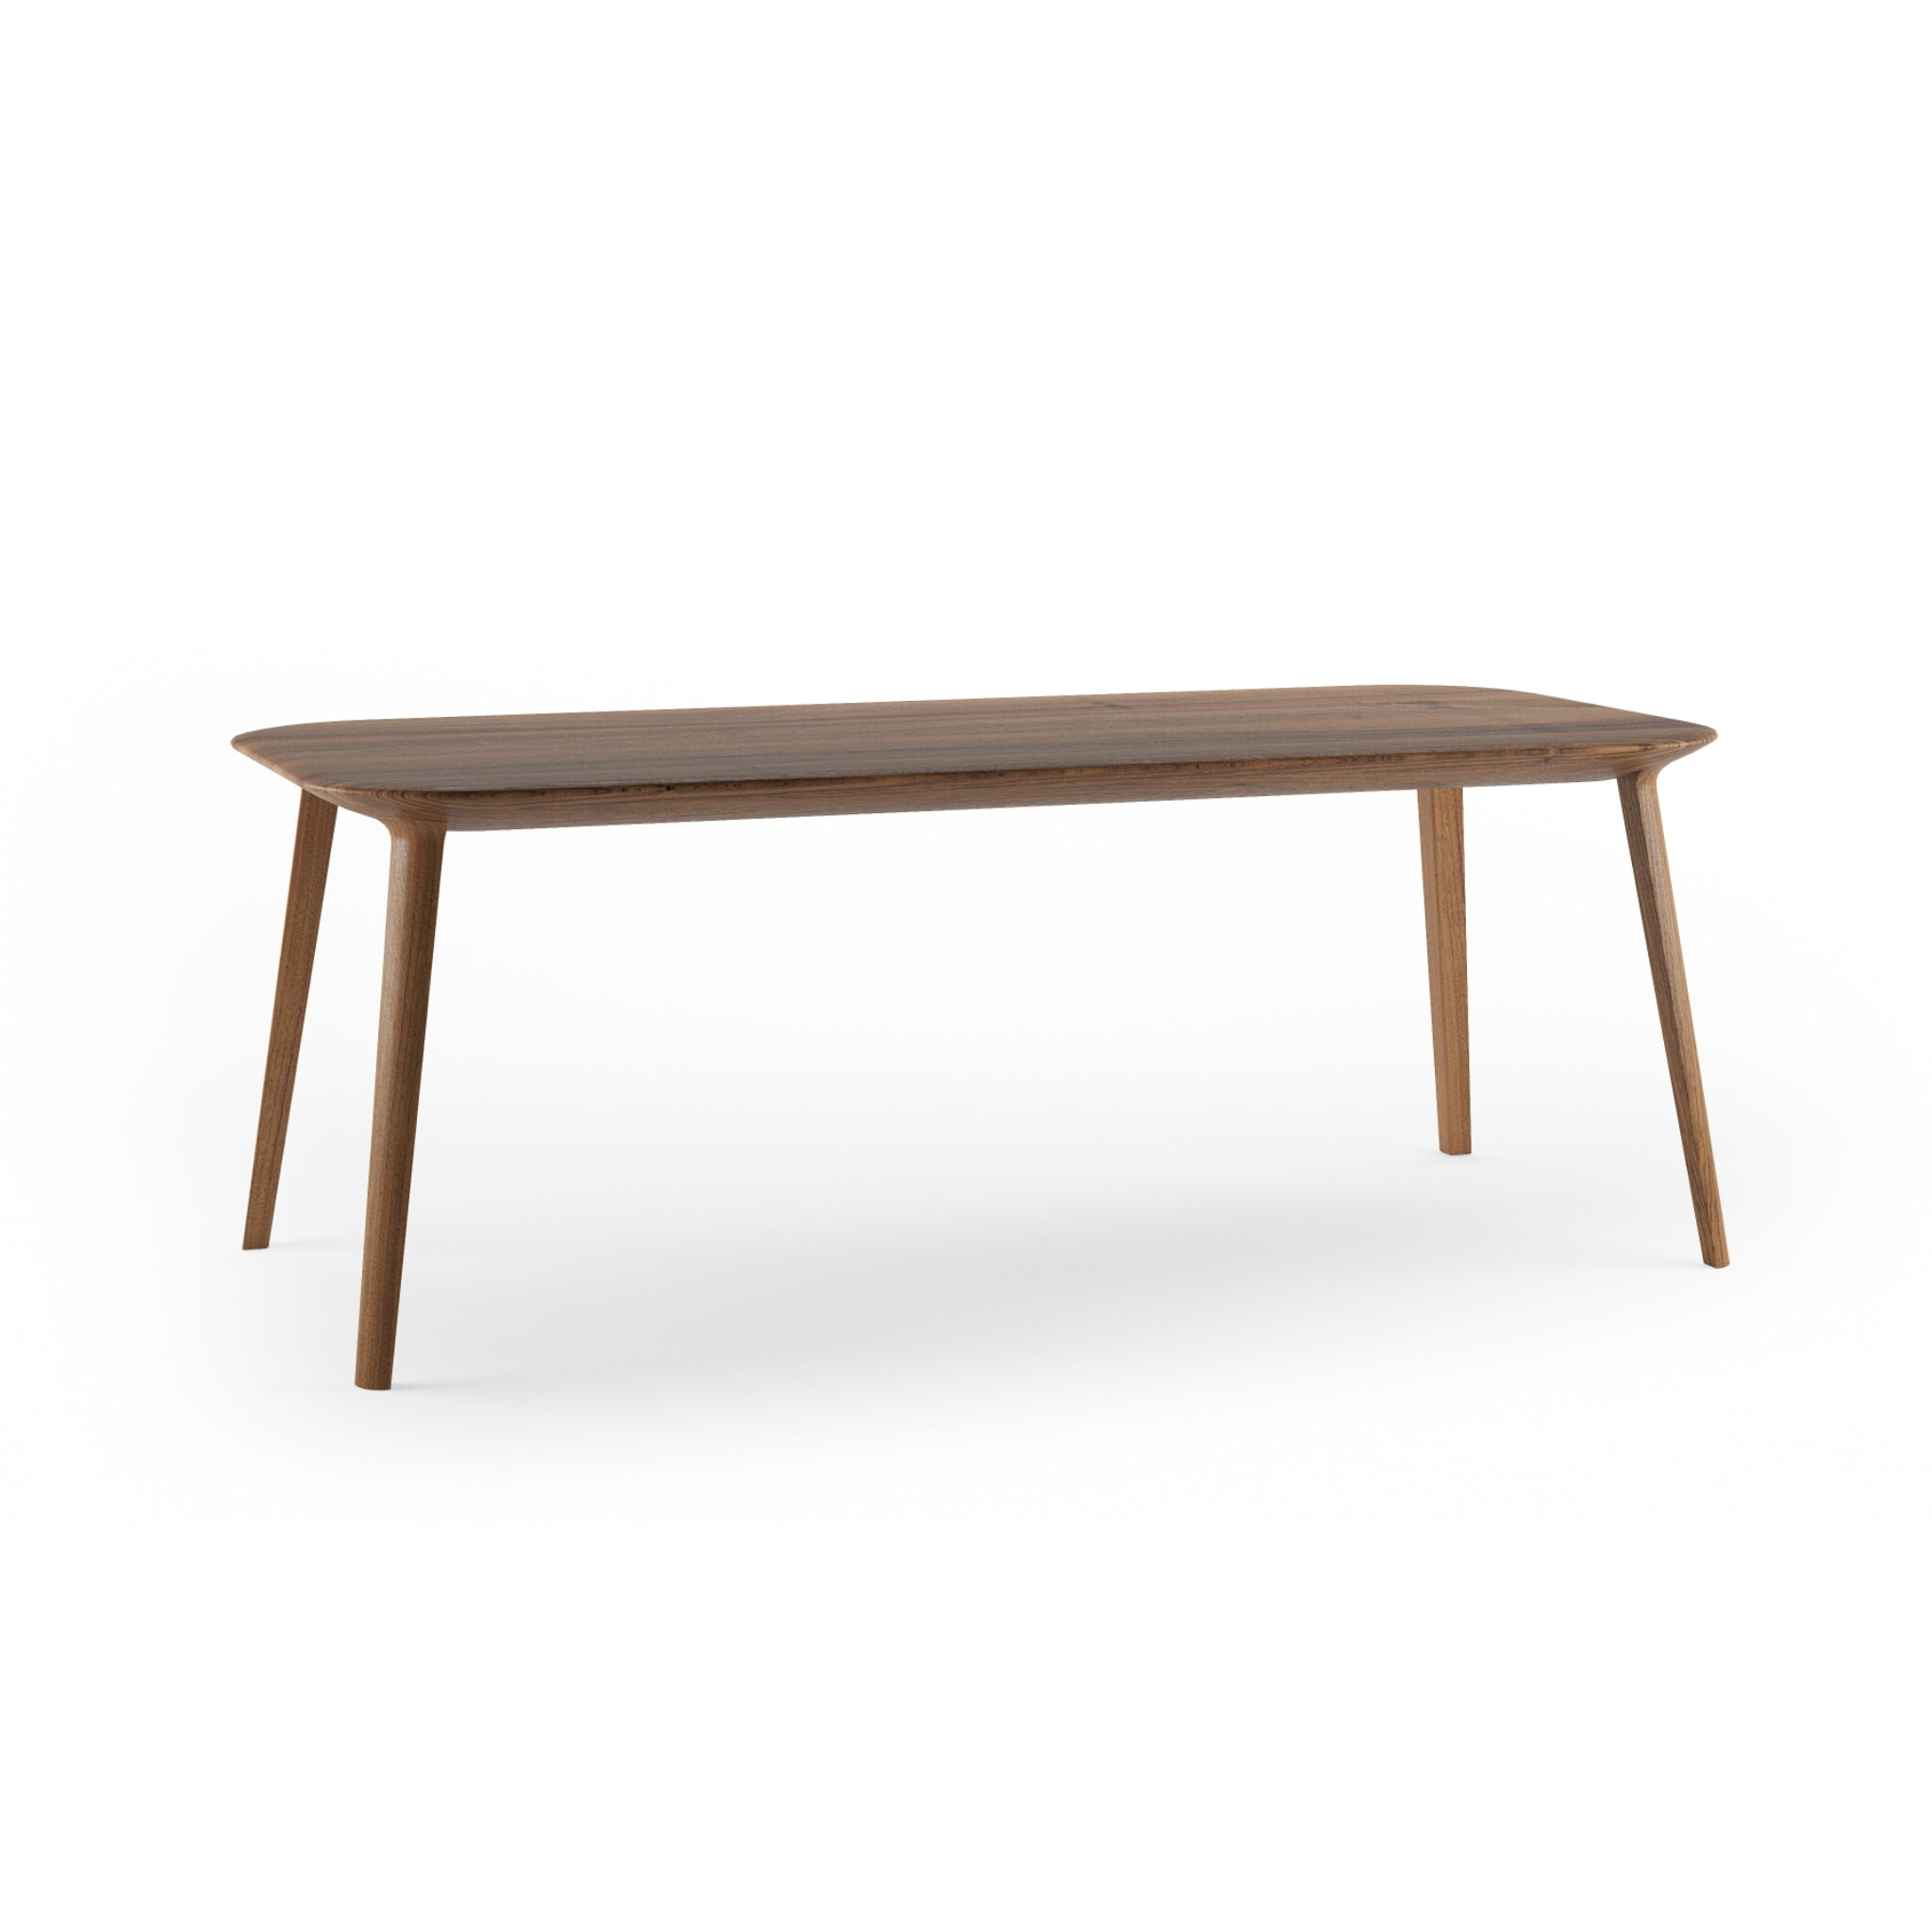 KALOTA TABLE SOLID